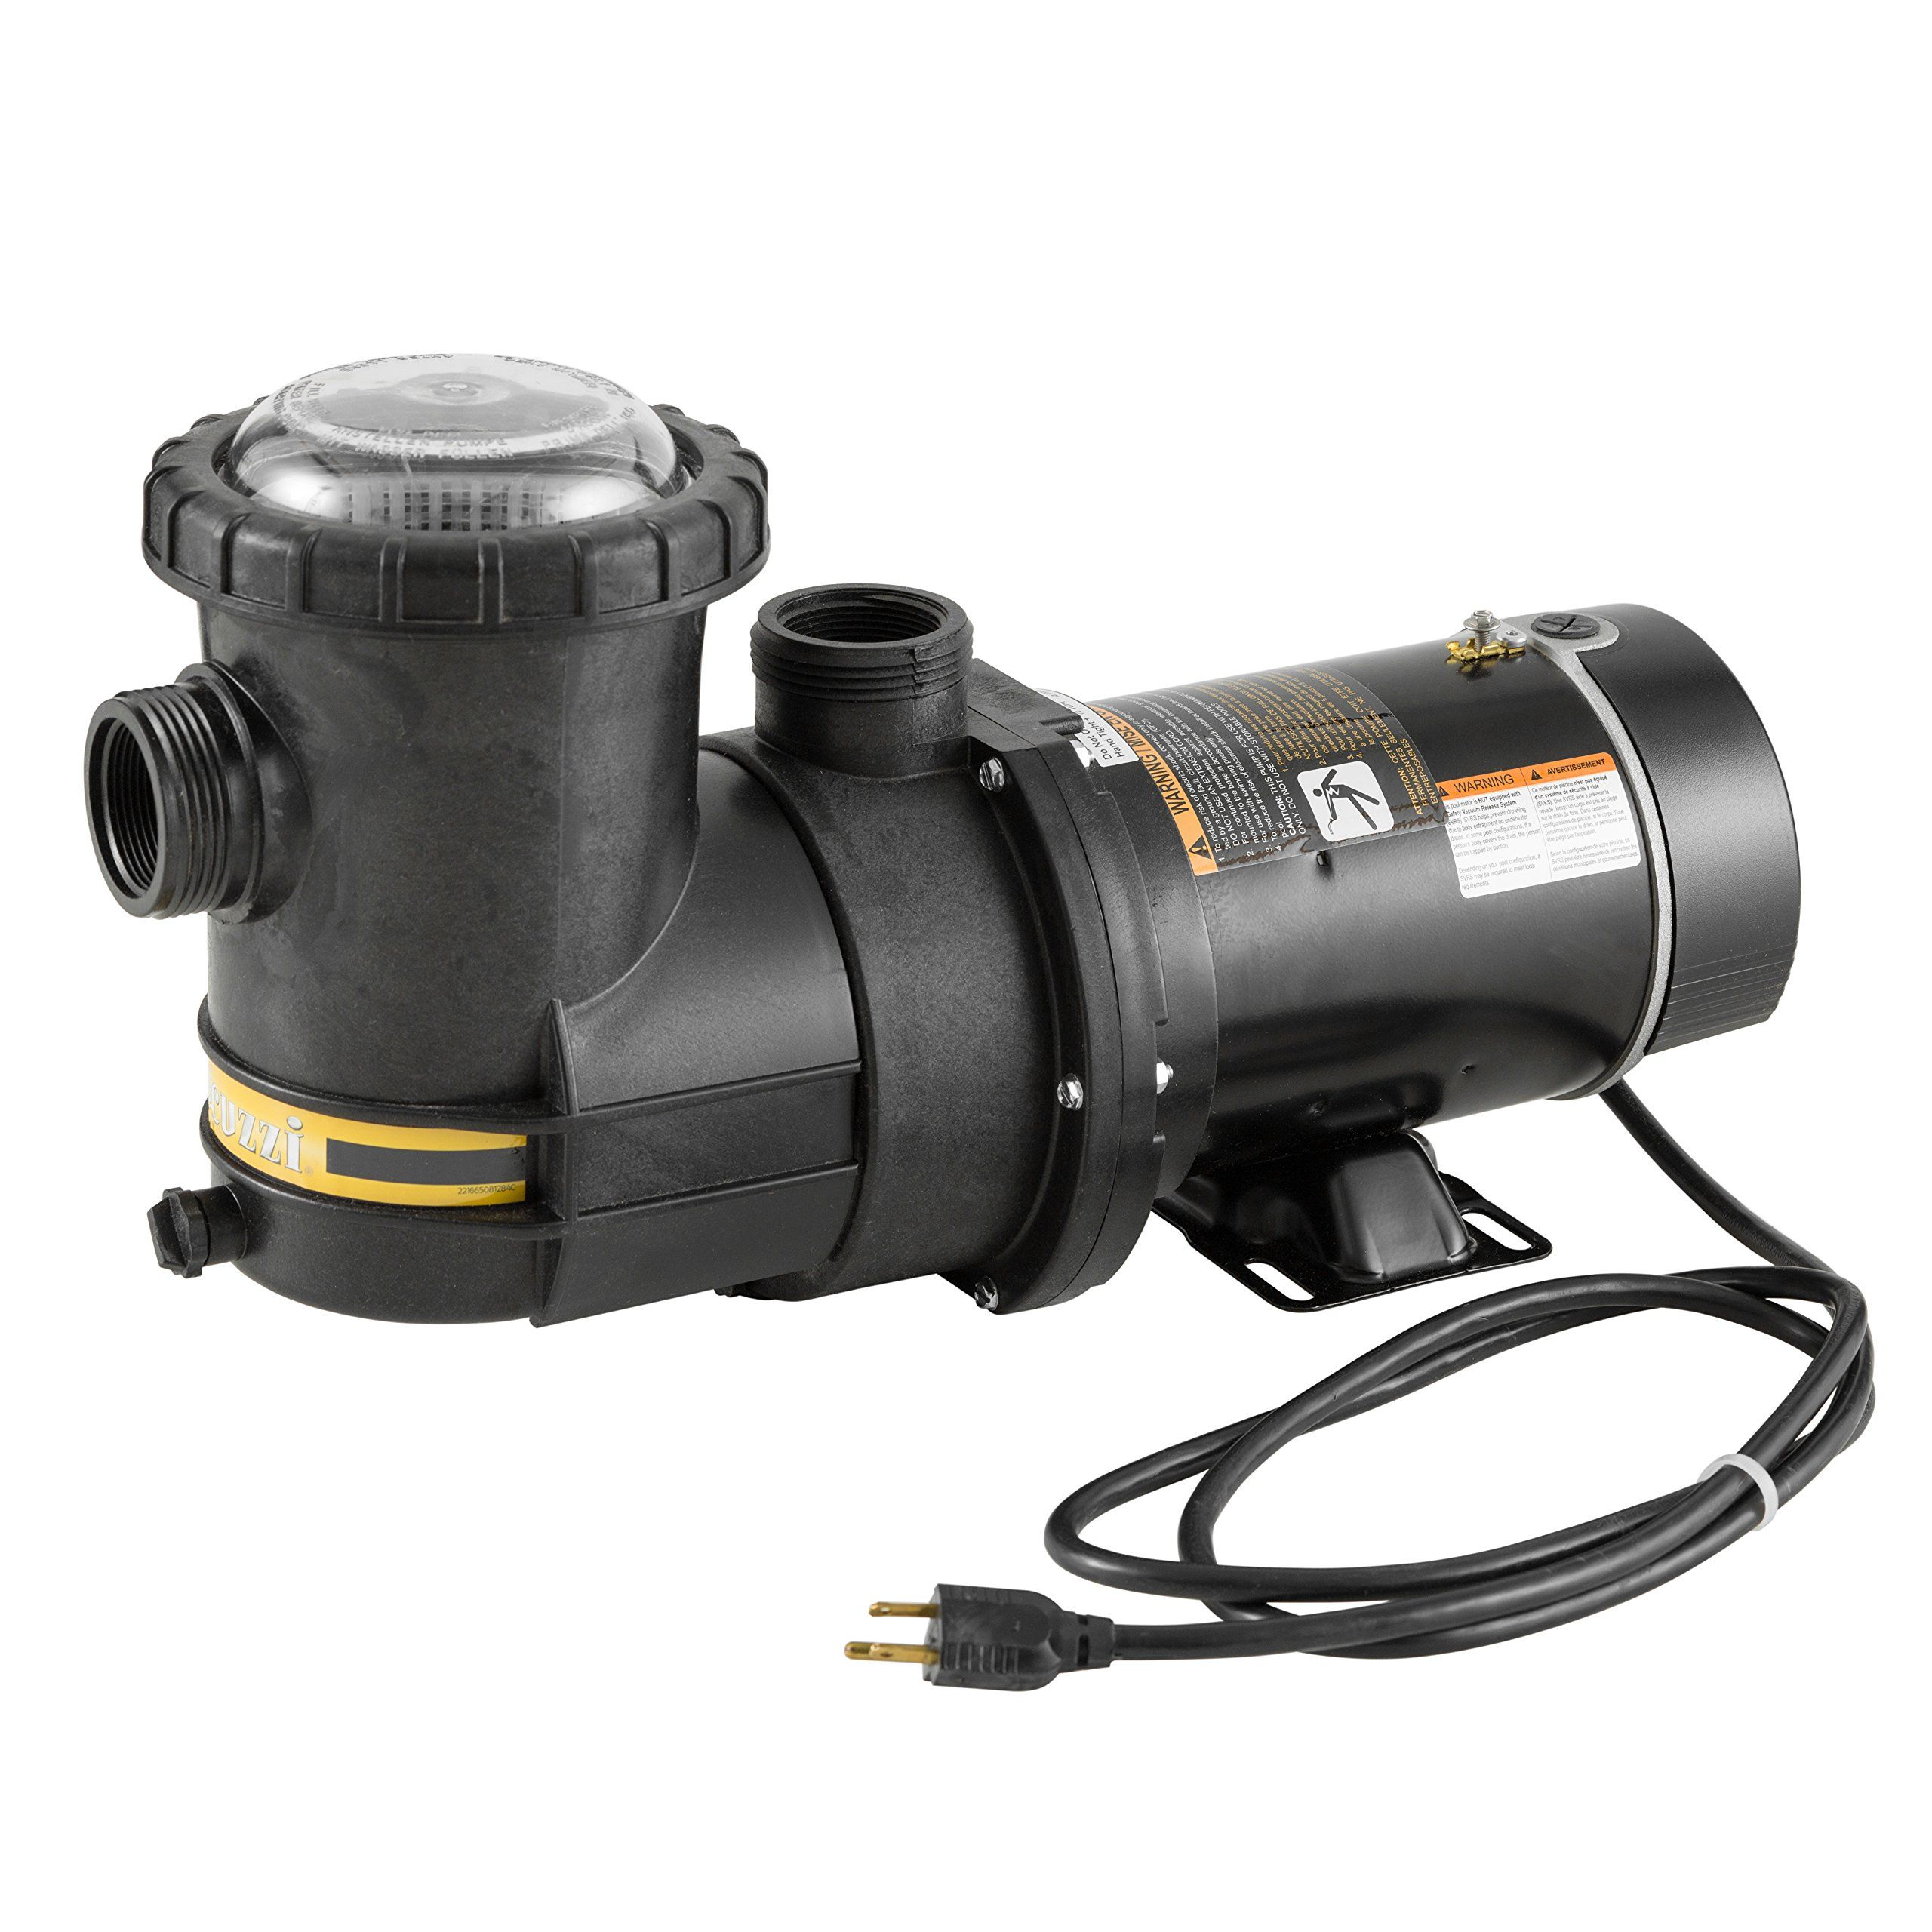 Jacuzzi Pool Pump Not Working Jacuzzi Slr 1 1 2 Hp Above Ground Pool Pump 1 1 2 Horsepower